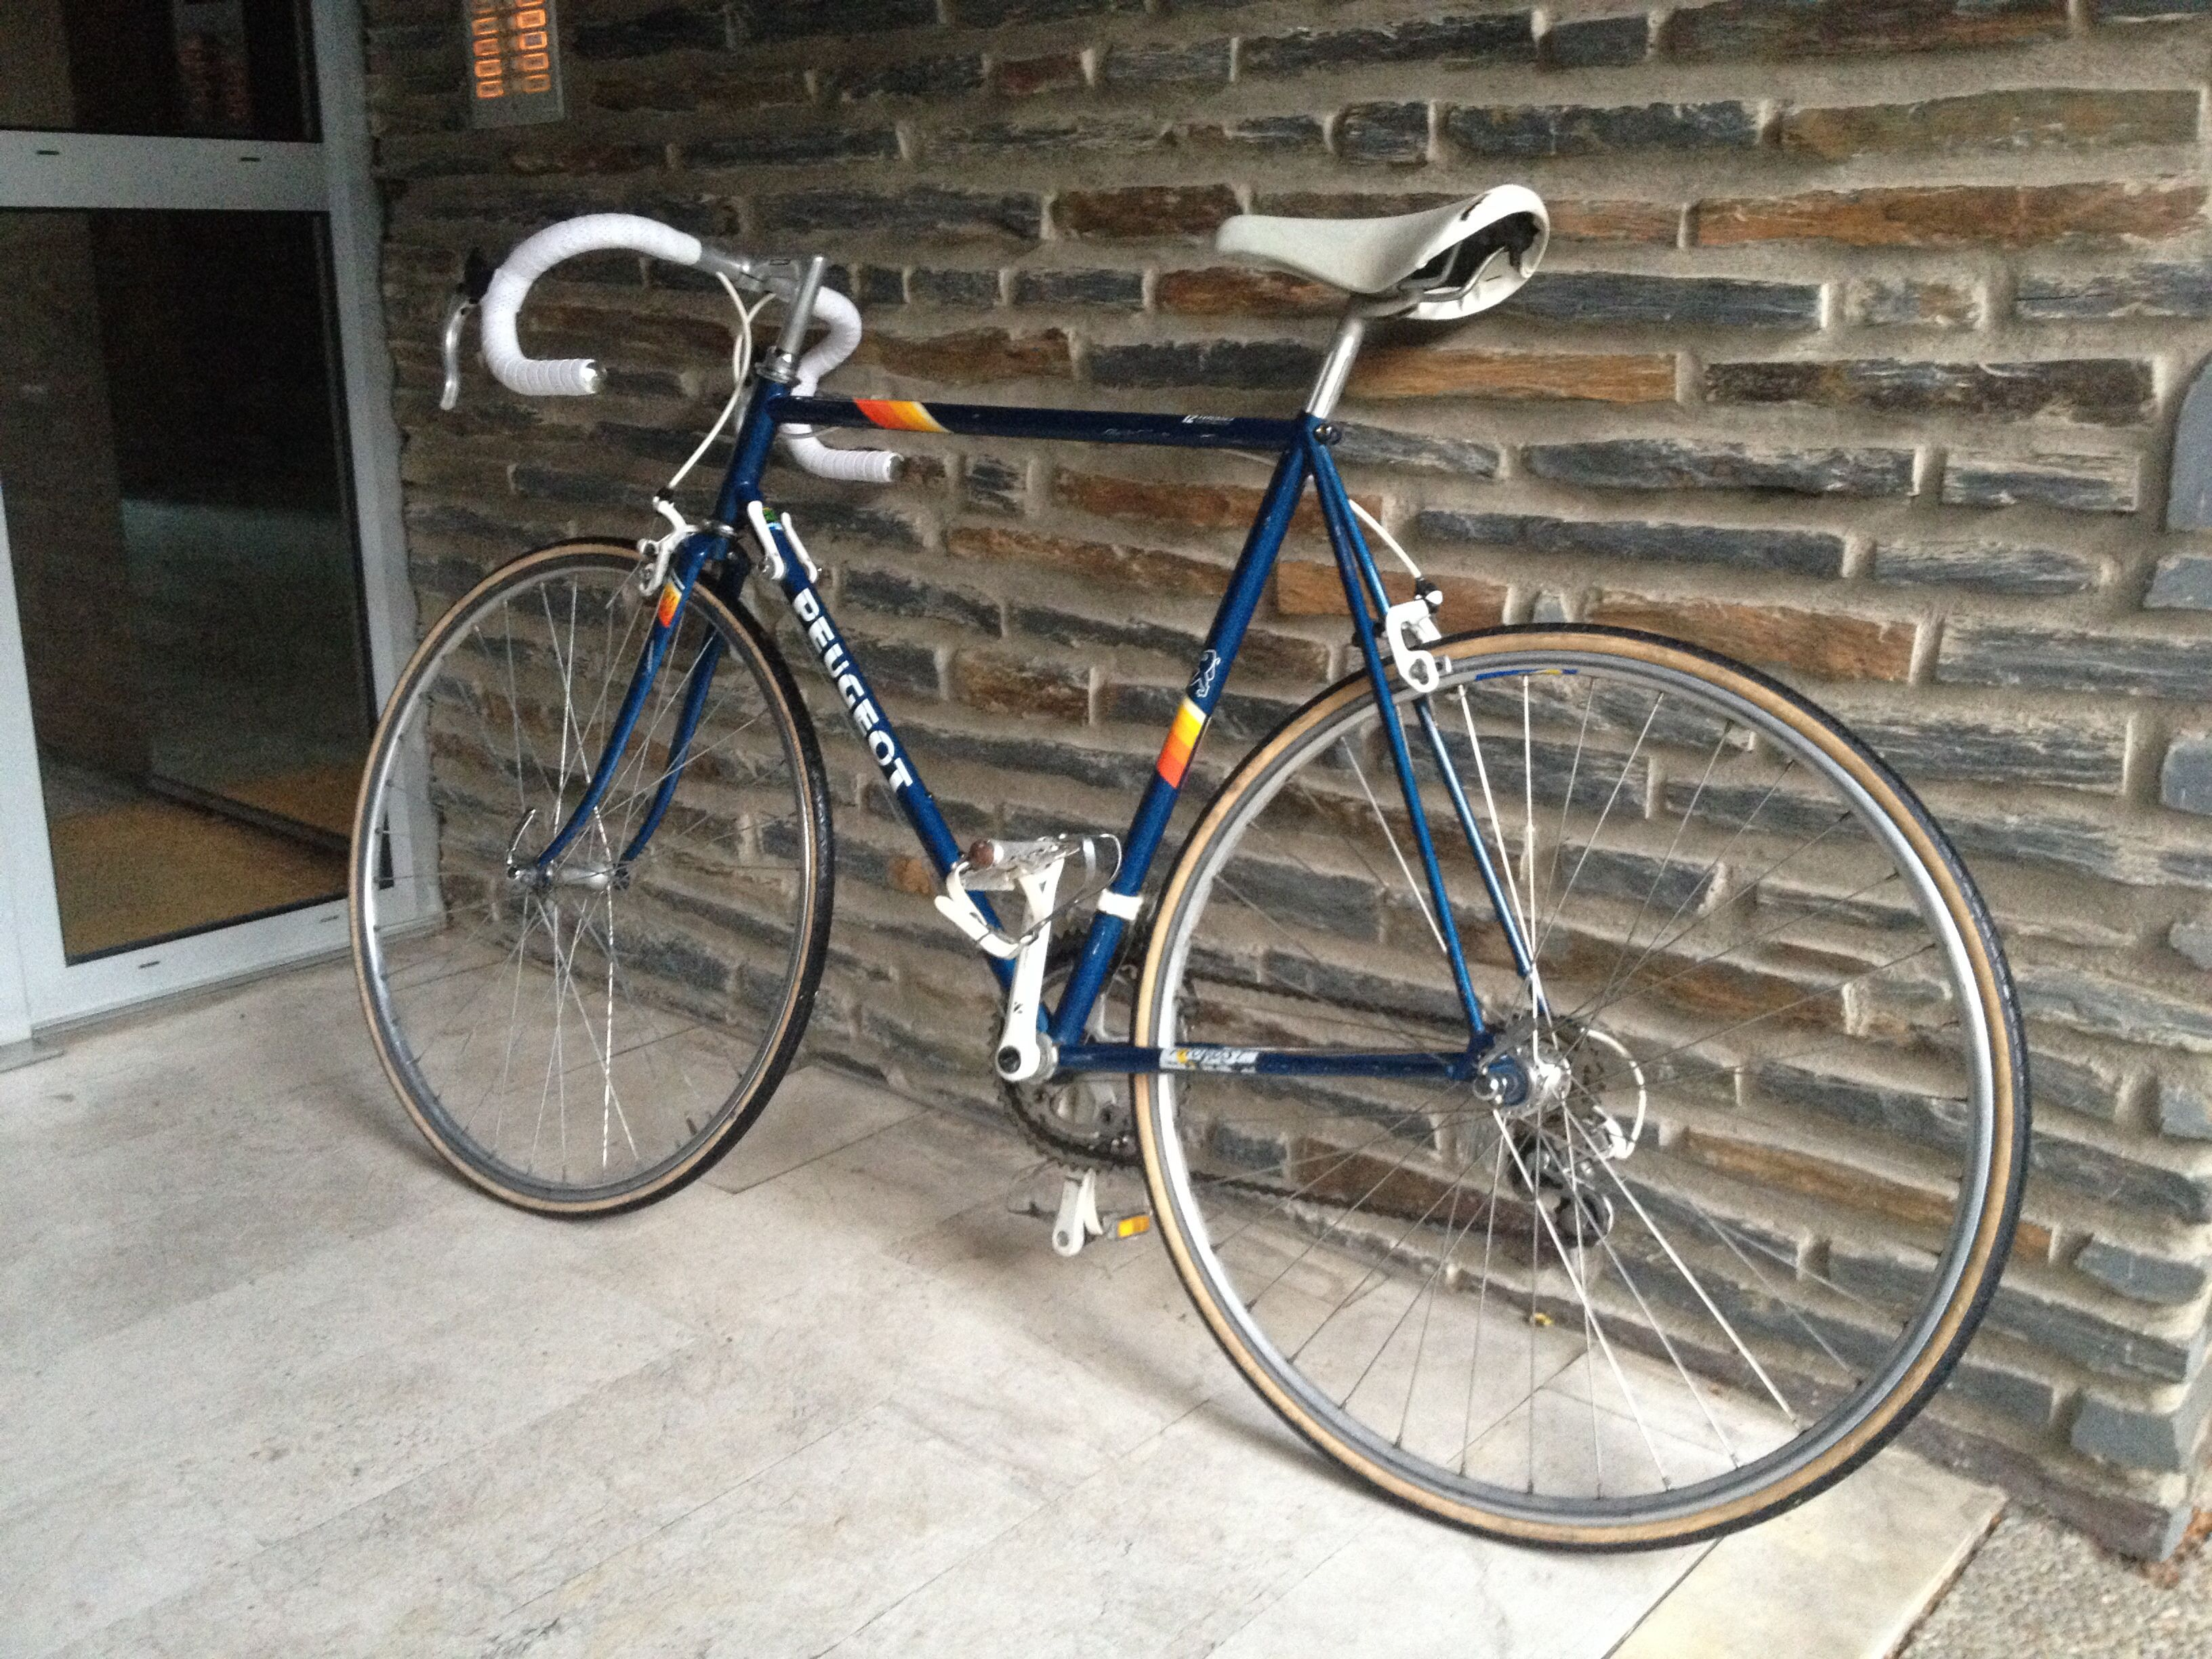 My new bike : original Peugeot Mont-Blanc  With gears but I'm